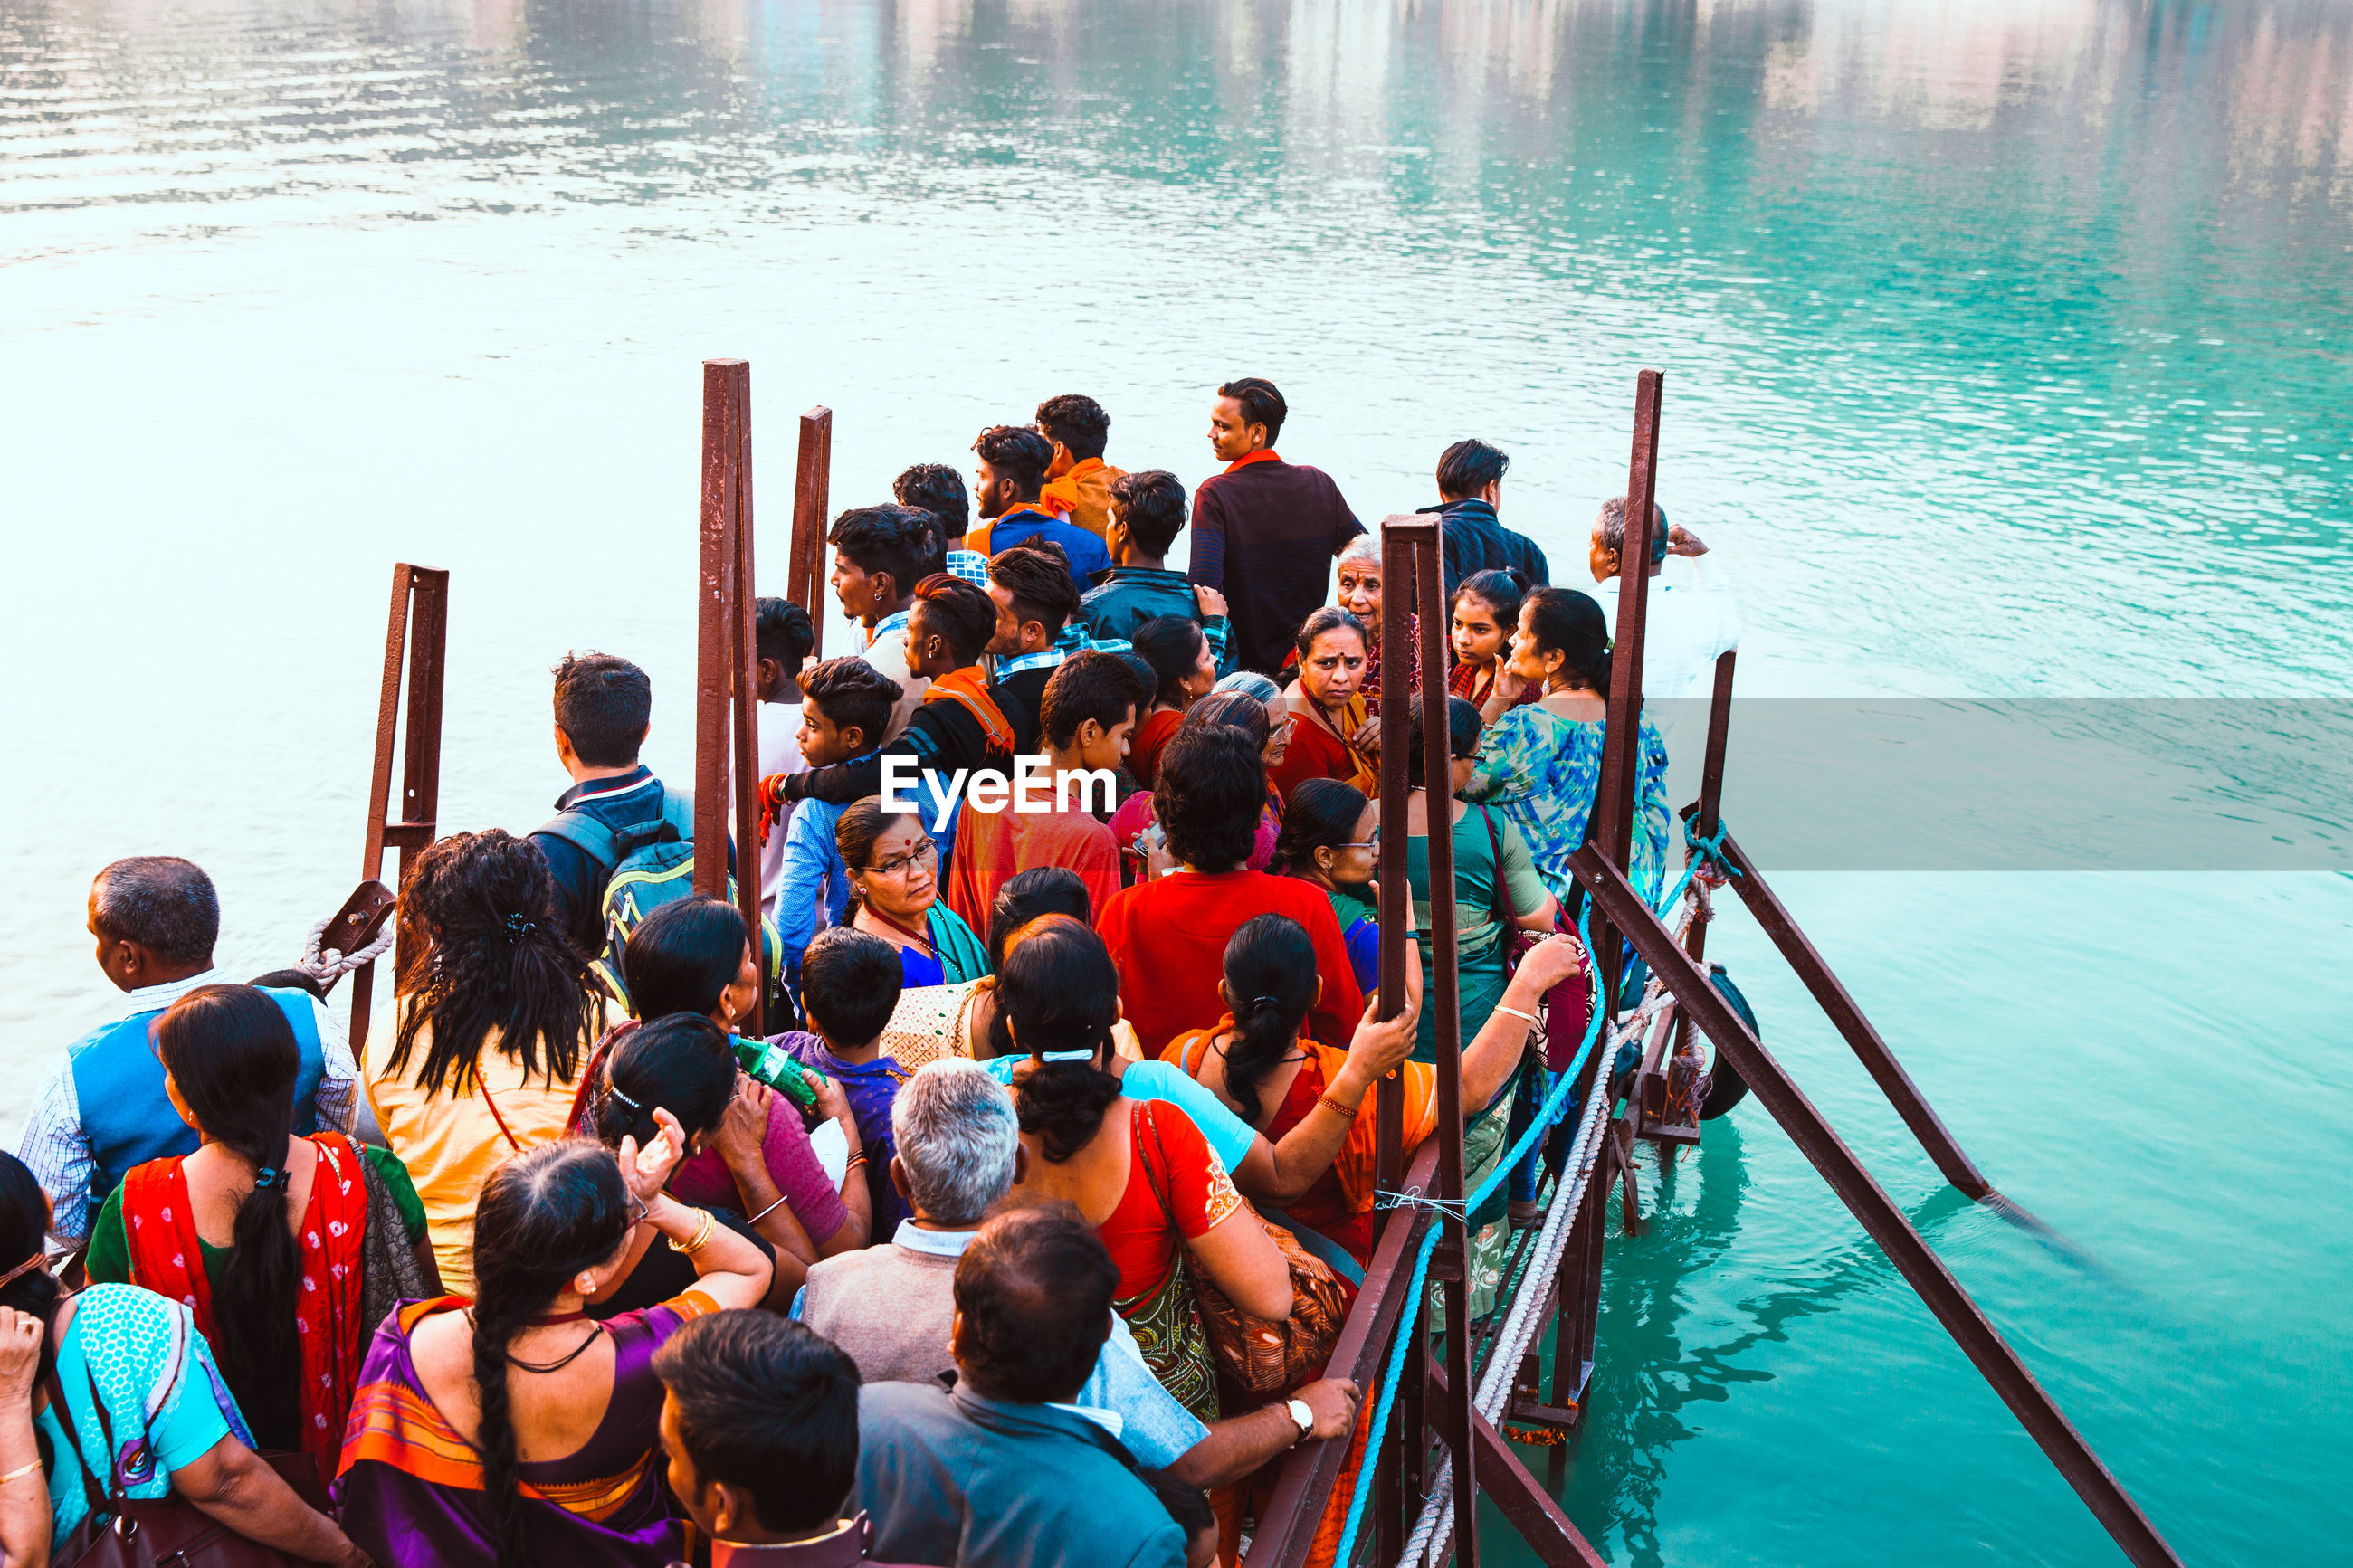 HIGH ANGLE VIEW OF PEOPLE SITTING AT LAKE